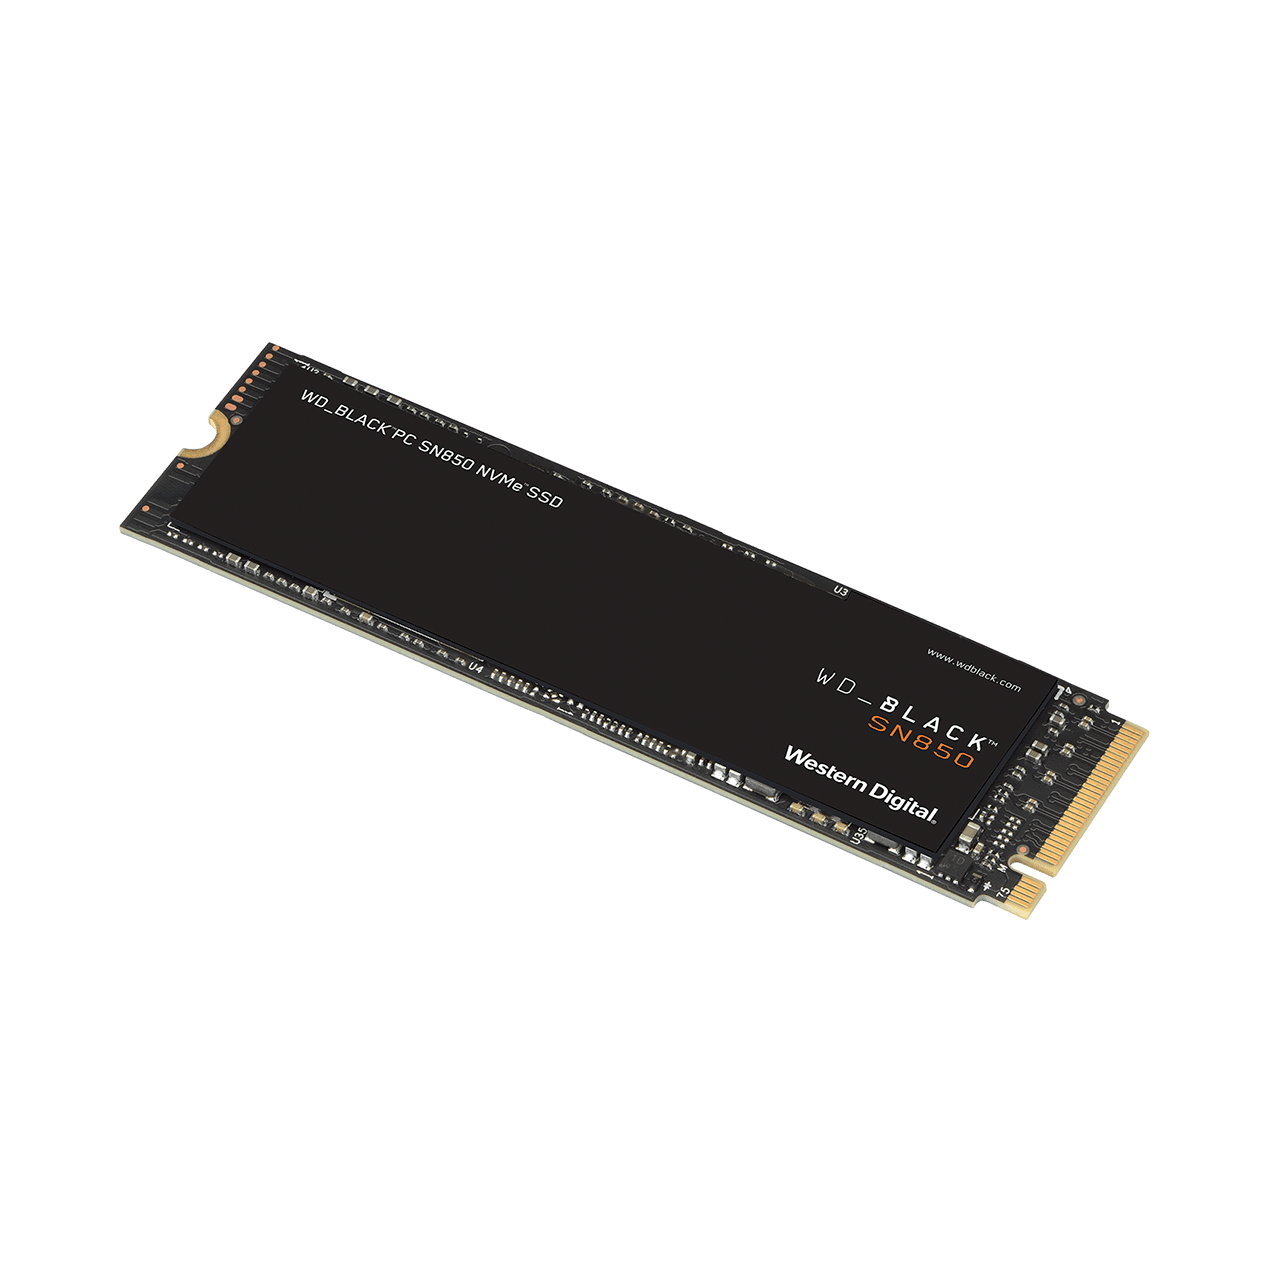 Disque SSD SN850 NVMe 1 To WD_BLACK Western Digital